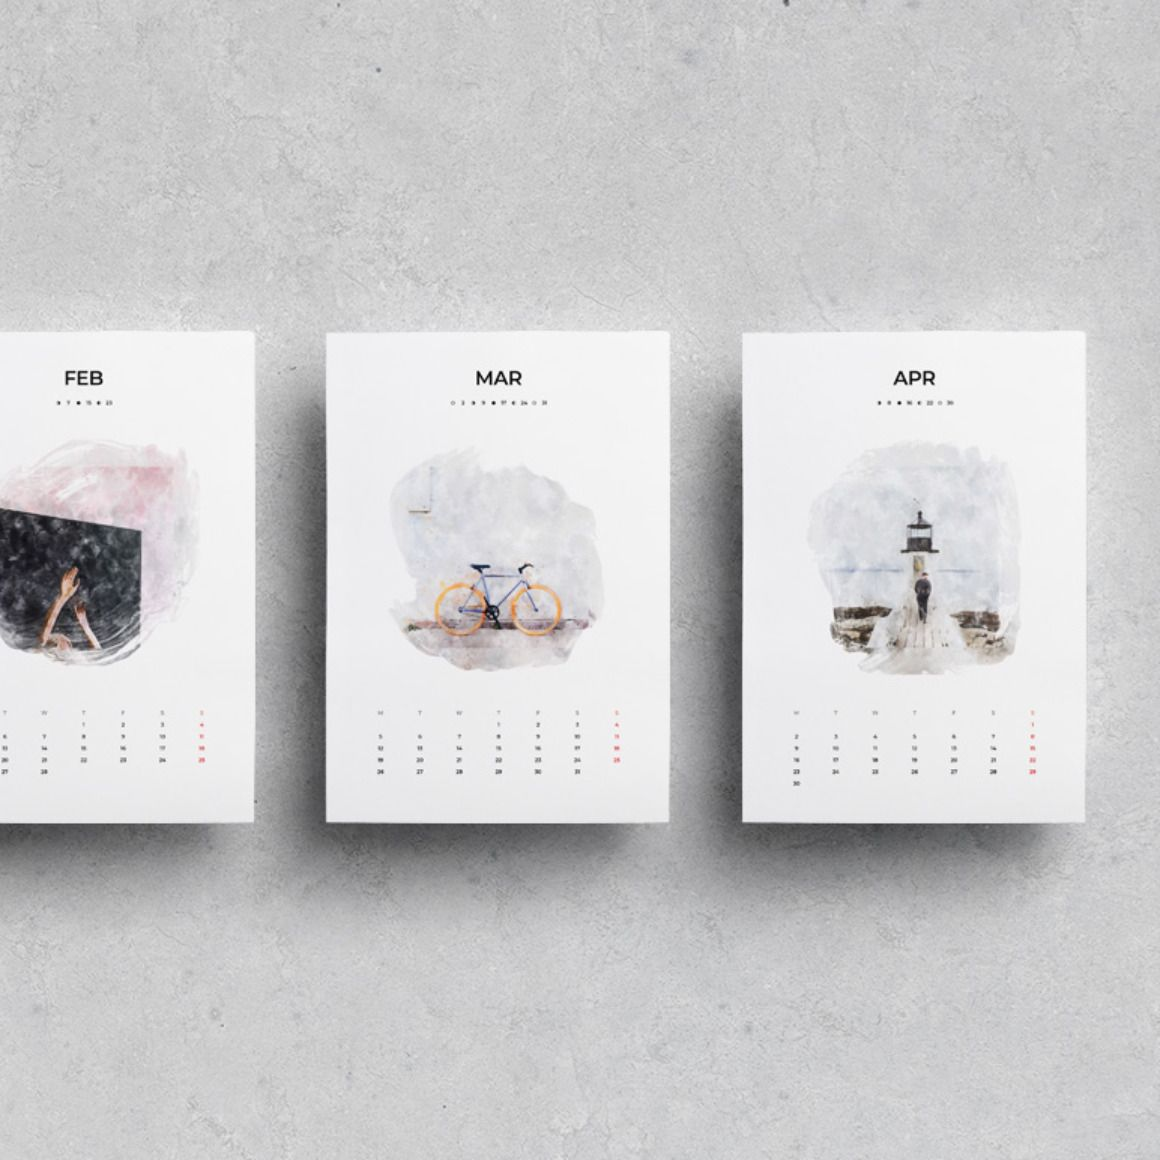 2019·2020 Watercolor Calendar